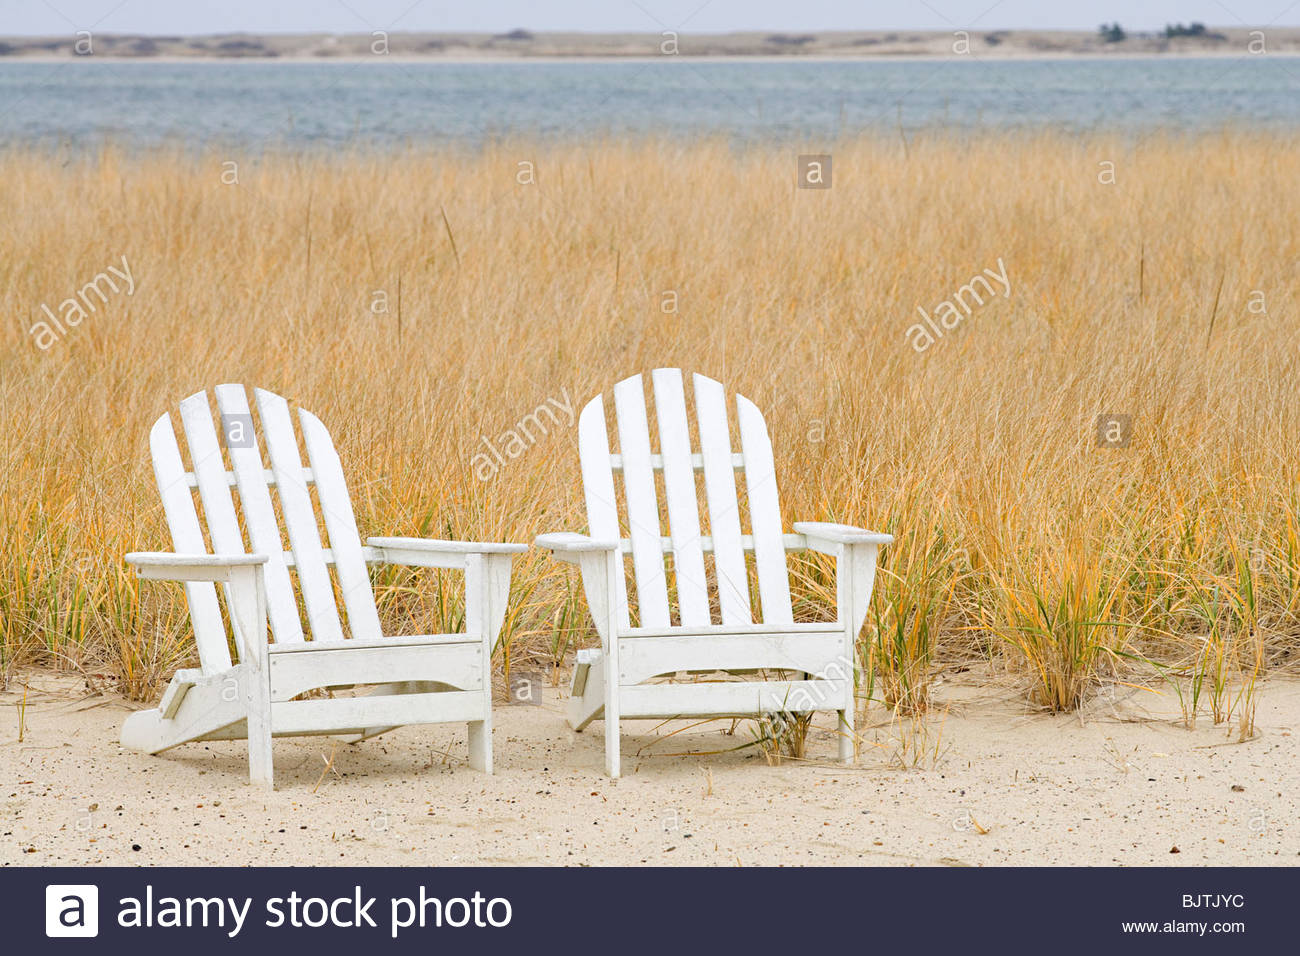 Two chairs by the sea - Stock Image